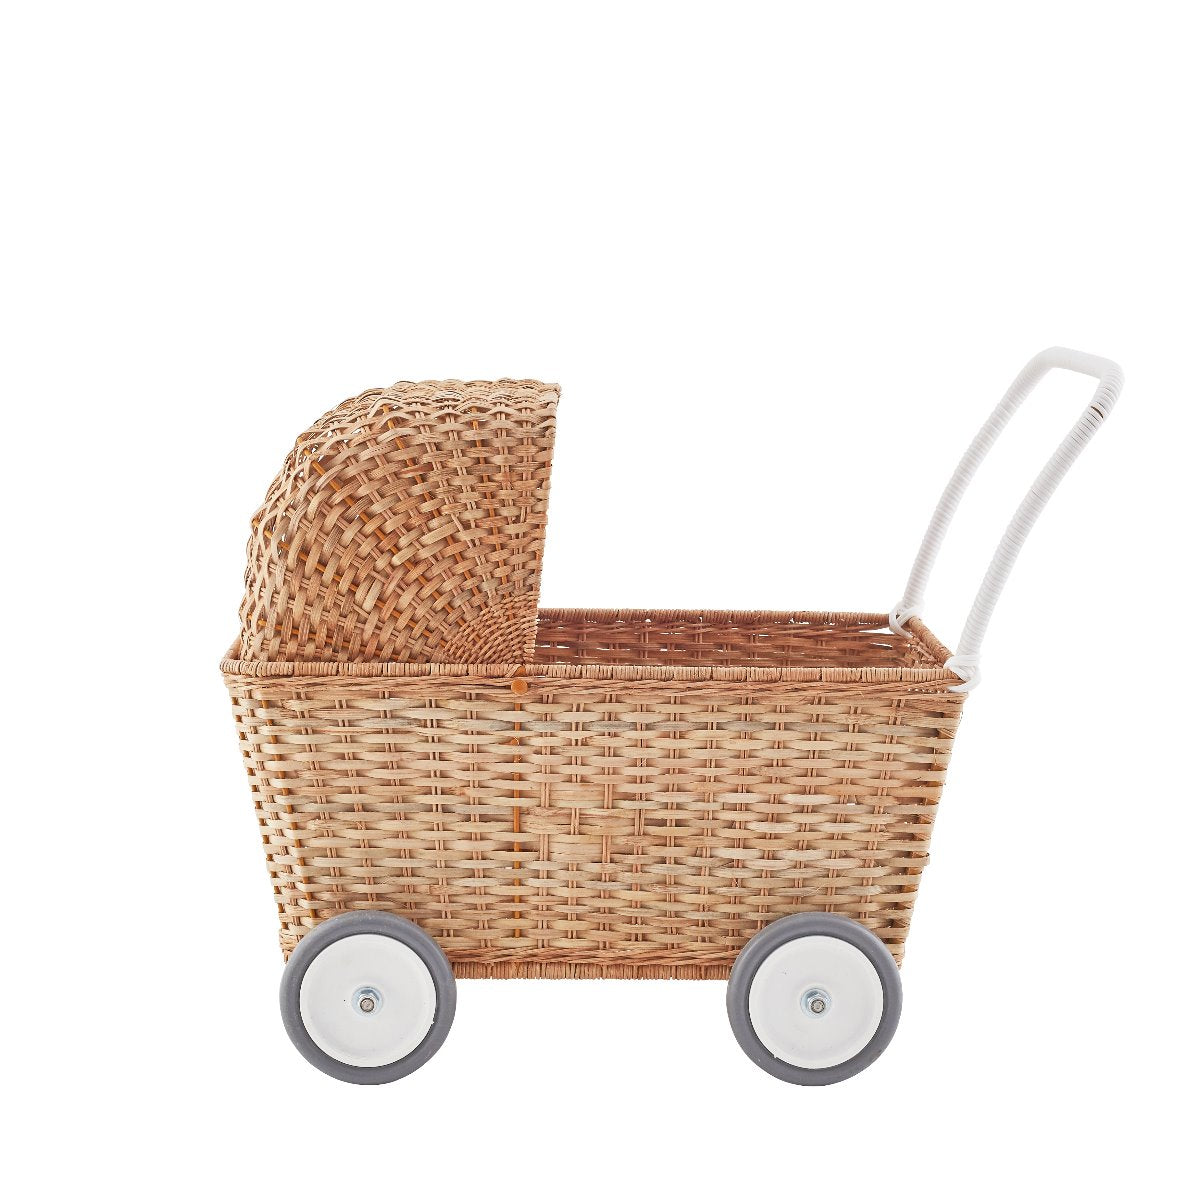 Olli Ella Stroller in Natural at Little Sprout